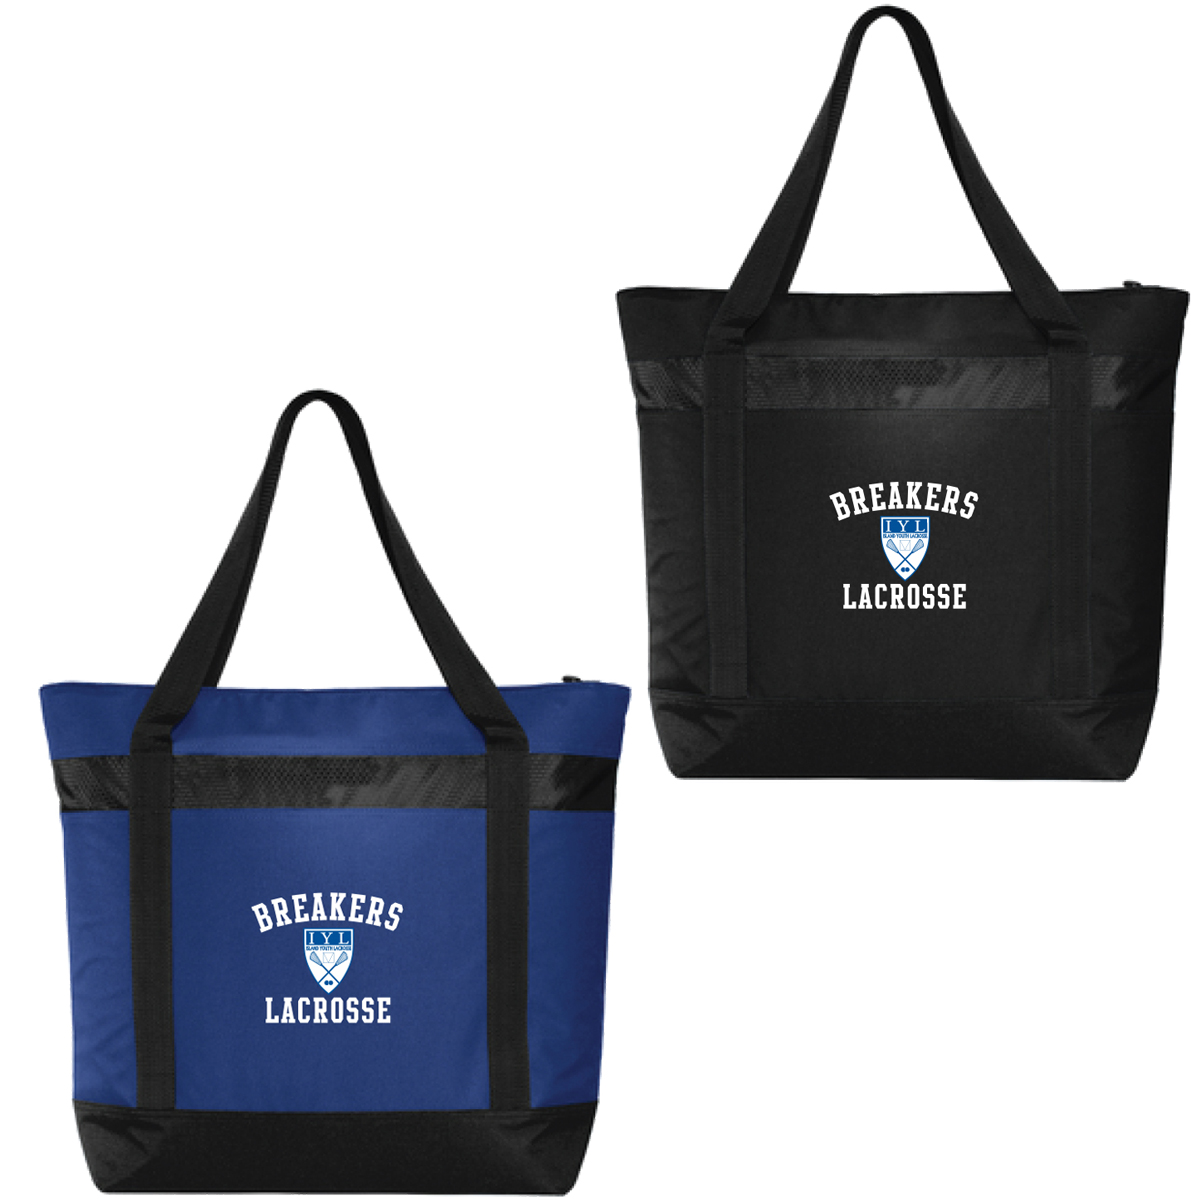 ISLAND YOUTH LACROSSE COOLER TOTE